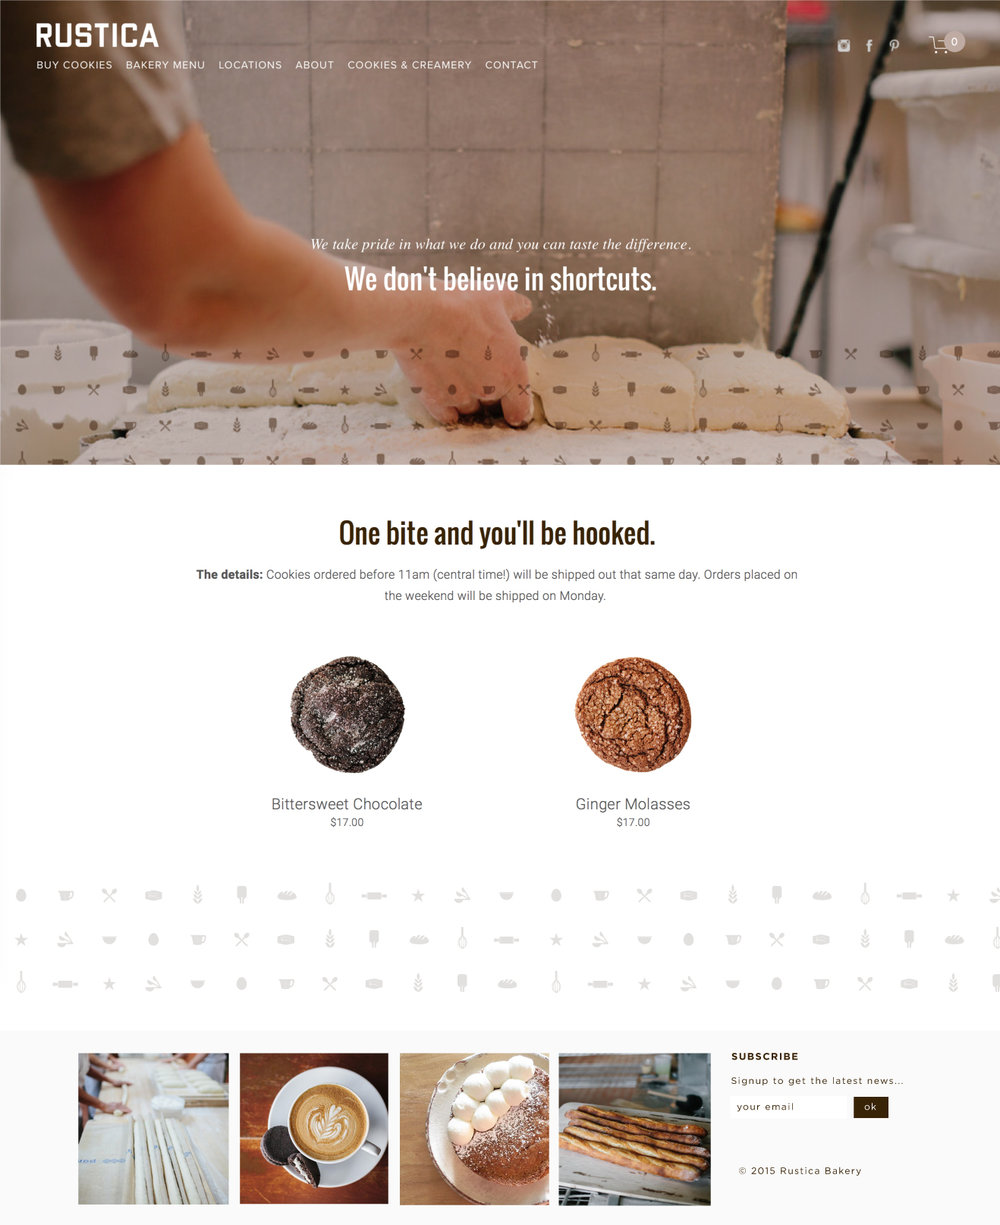 Rustica Bakery website design by Kayd Roy